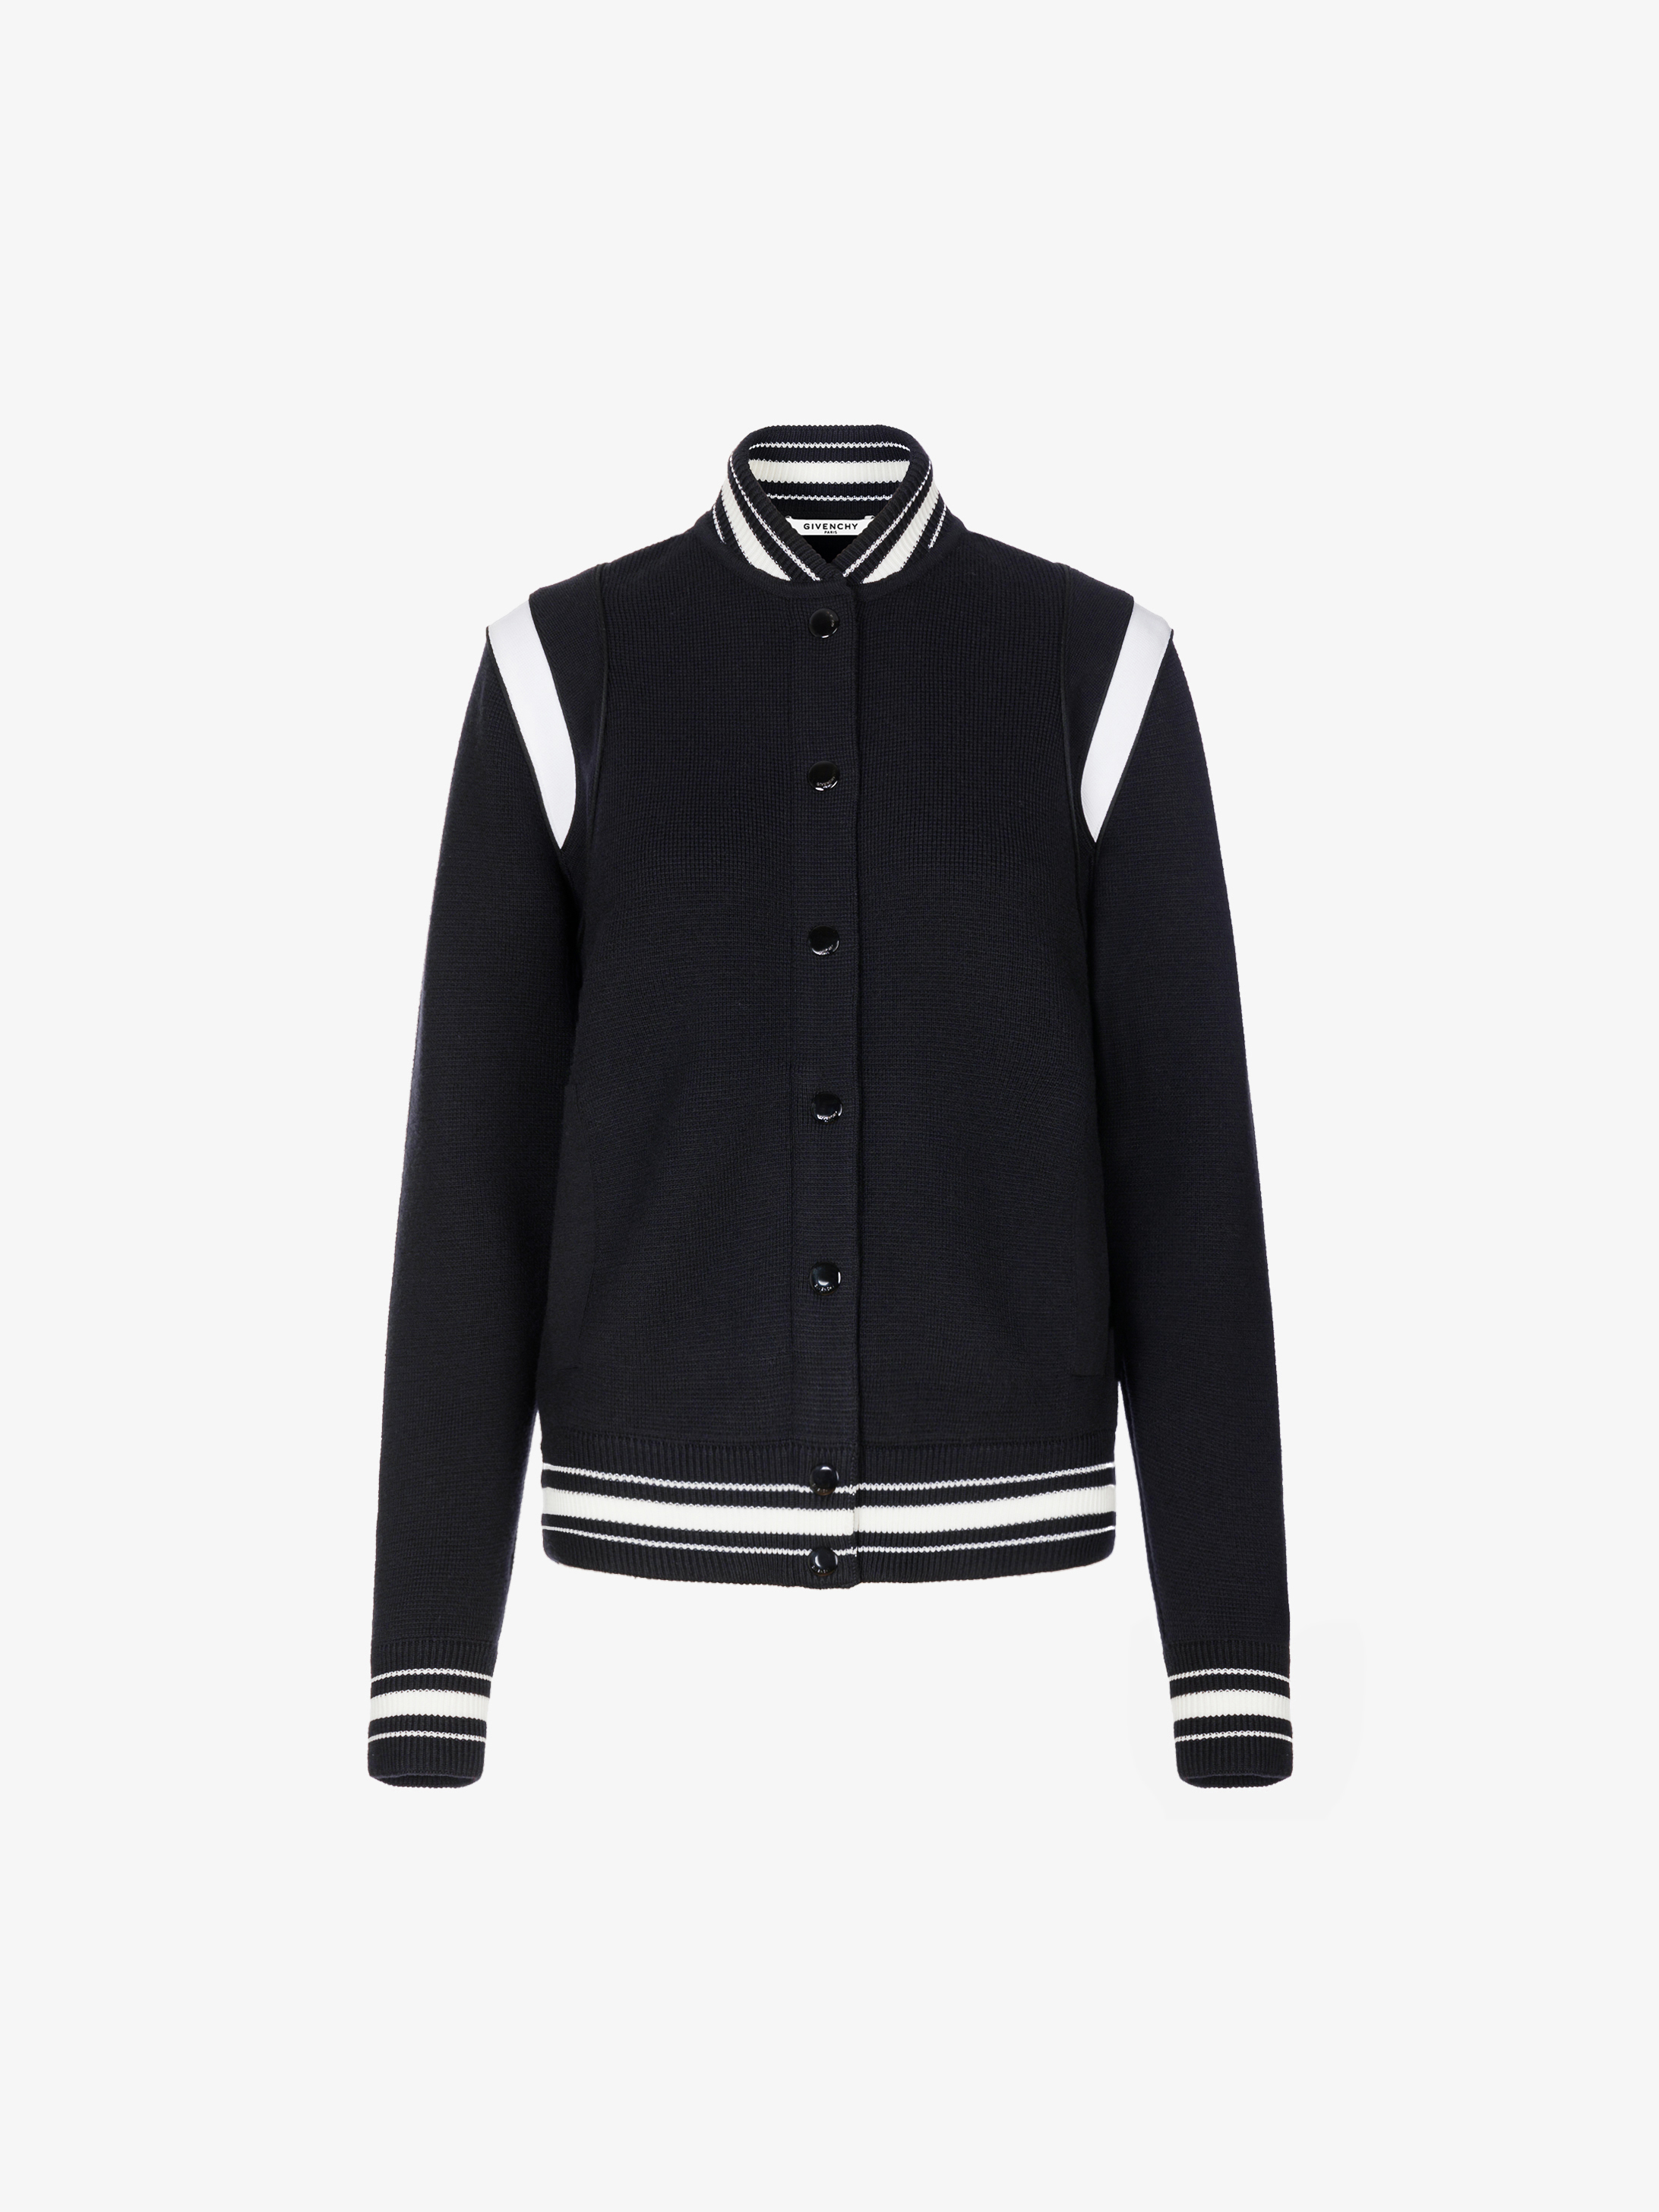 4G knitted bomber jacket